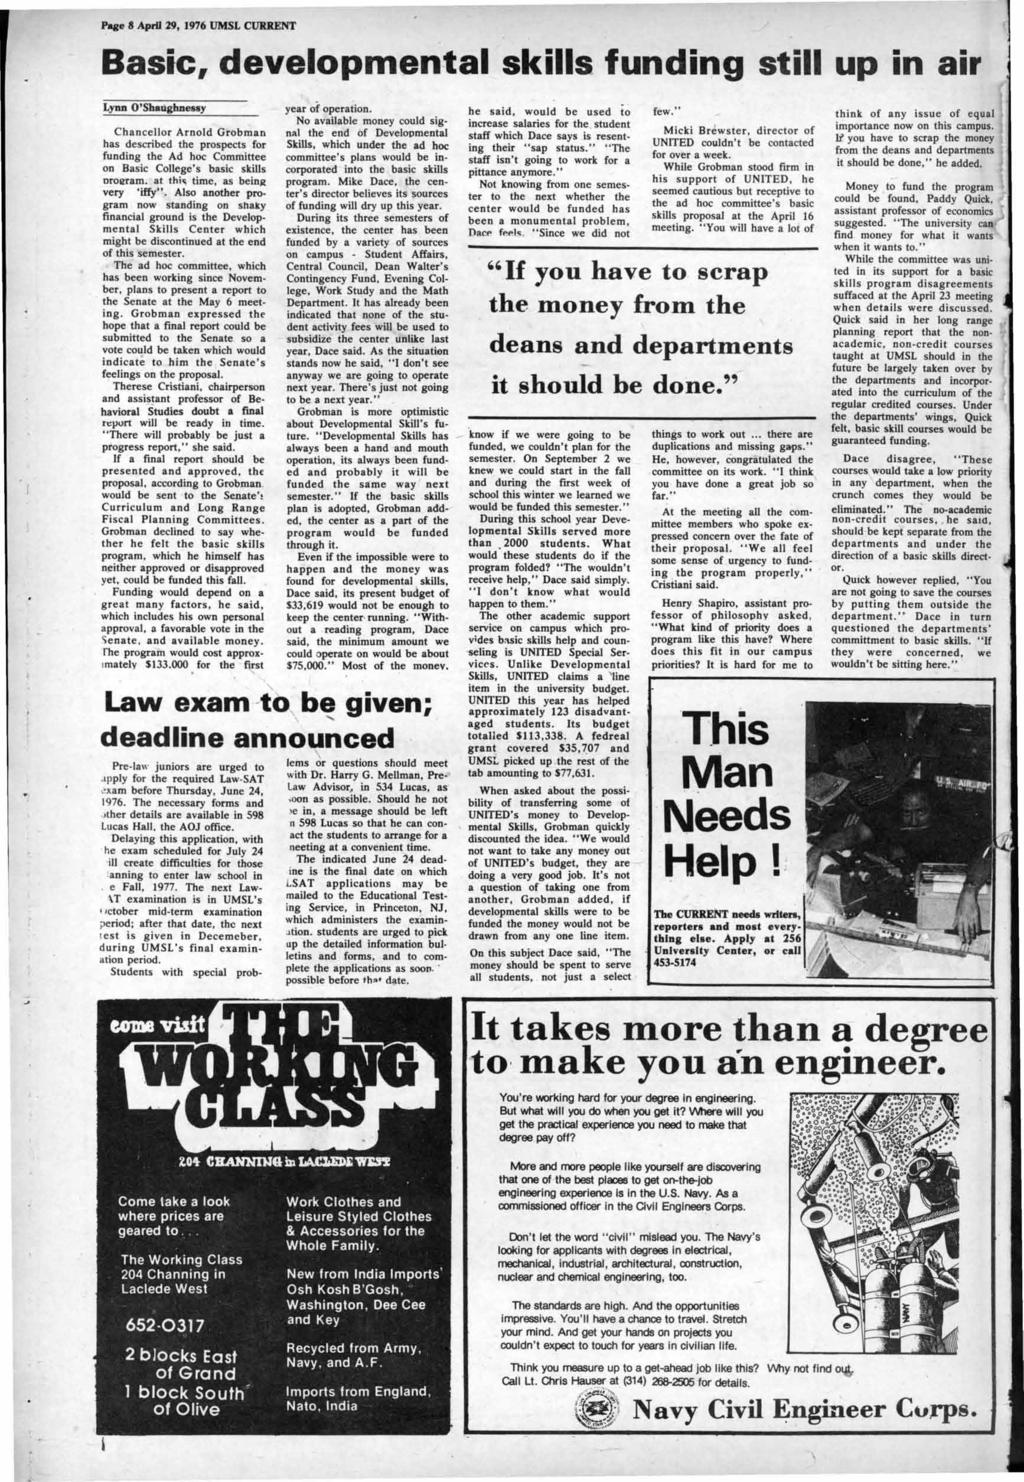 P-ae 8 April 29, 1976 UMSL CURRENT Basic, developmen tal skills funding still up In air Lynn O'Shaughnessy Chancellor Arnold Grobman has described the prospects for funding the Ad hoc Committee on